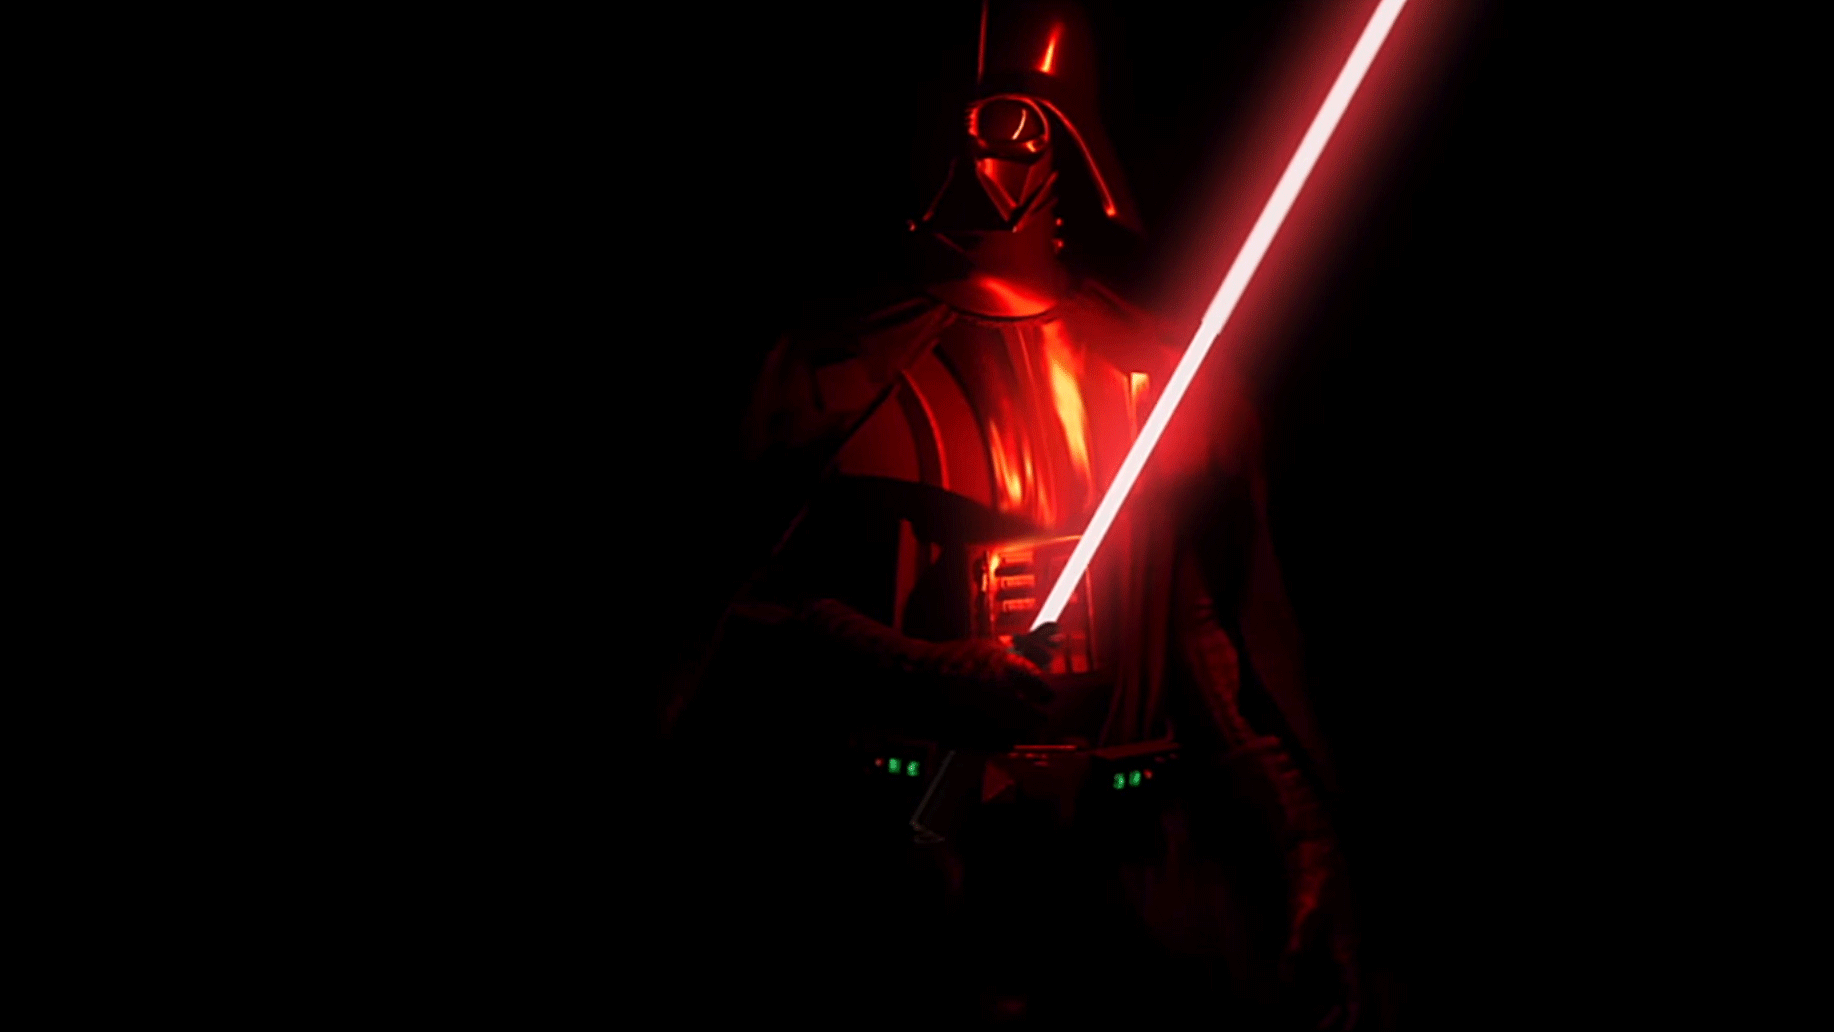 'Star Wars Vader Immortal' Confirmed for Oculus Rift, New Trailer Revealed